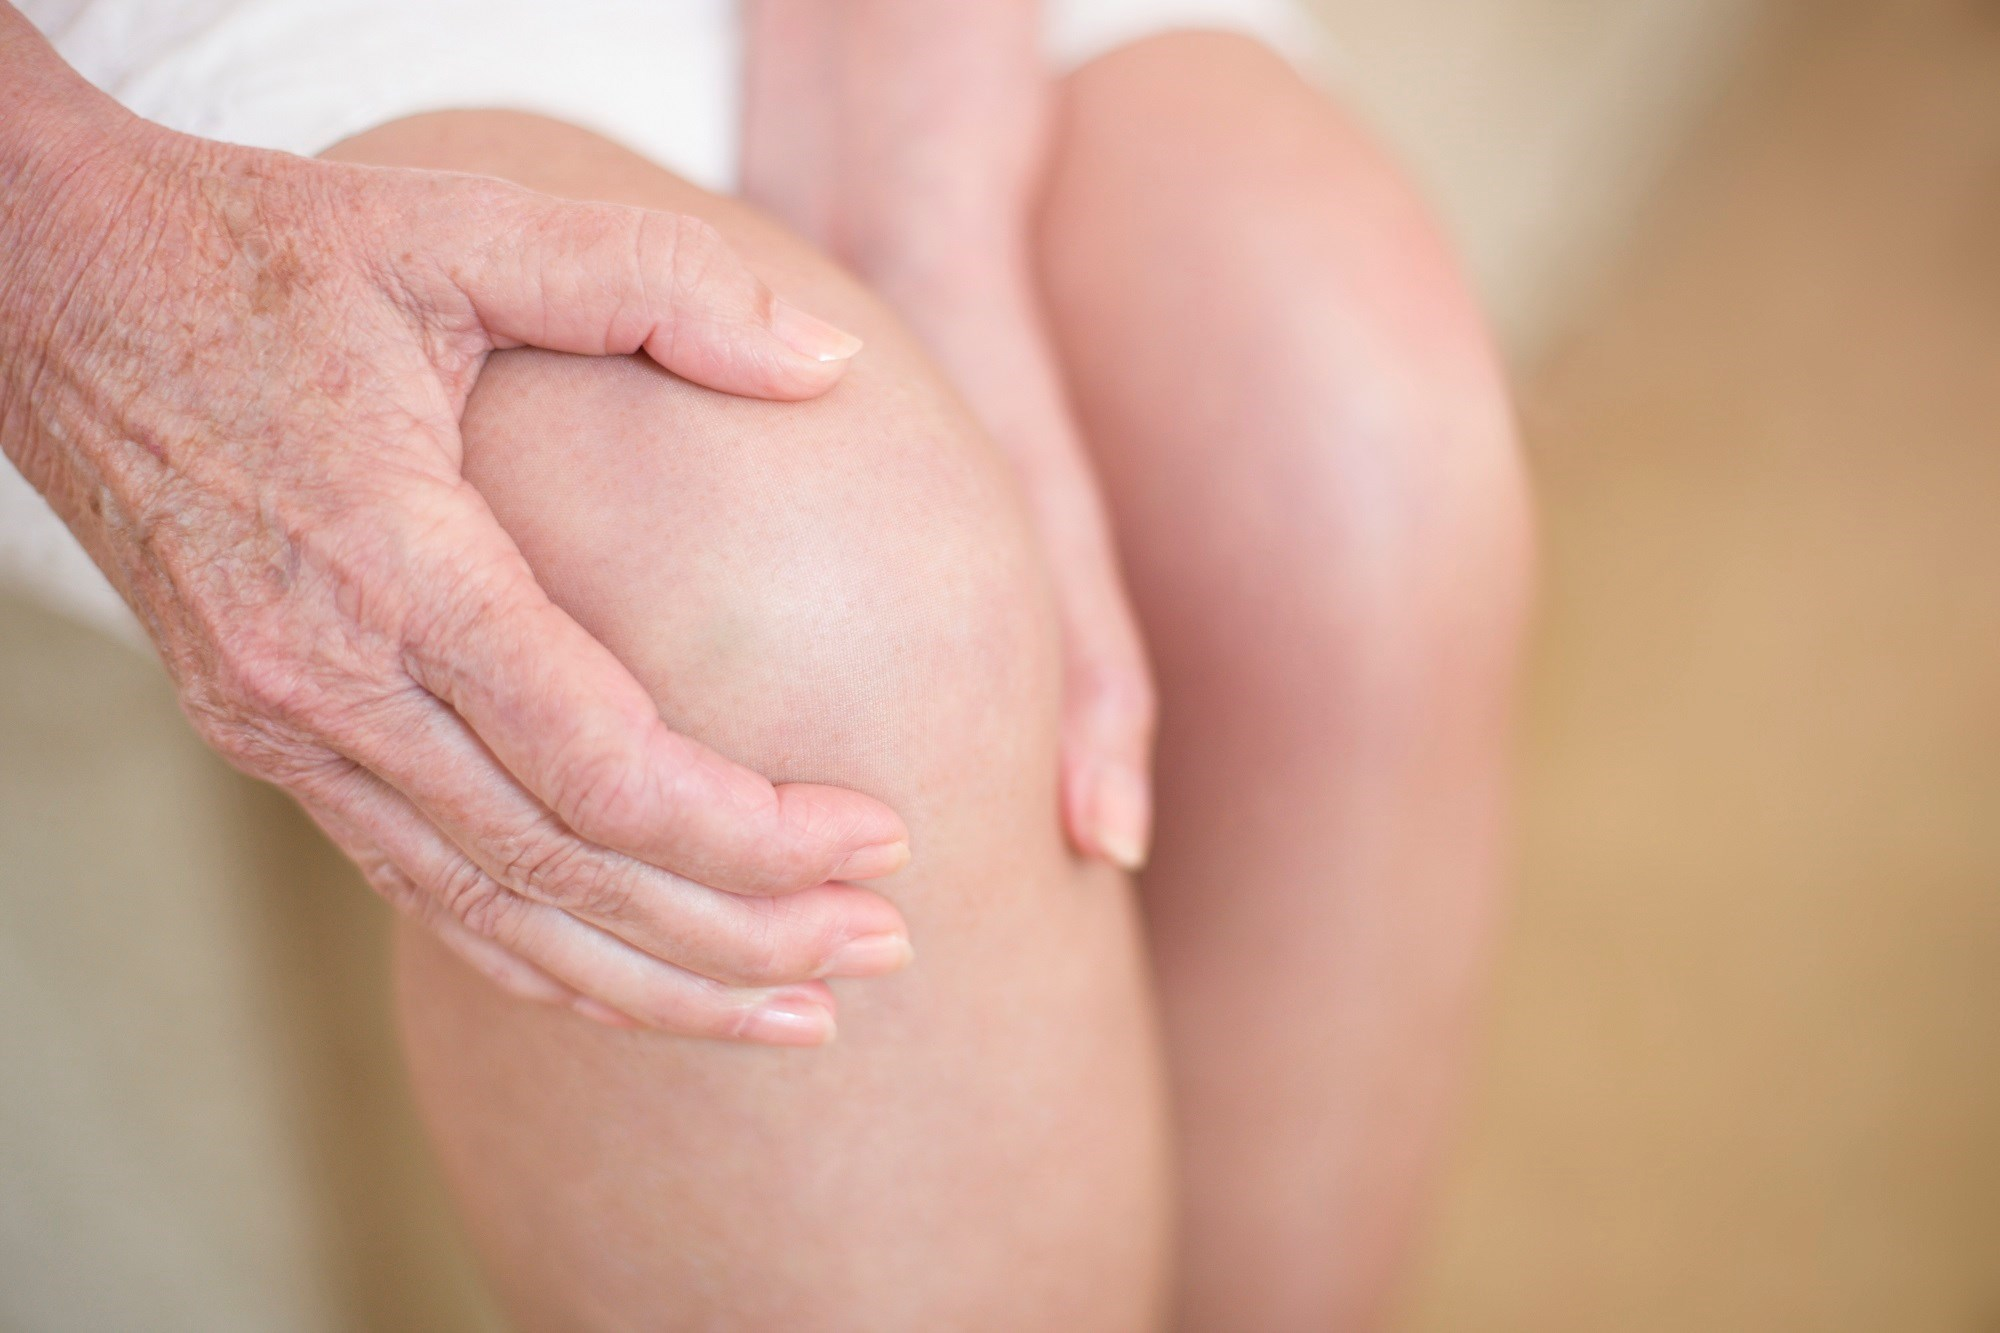 Lutikizumab May Not Improve Pain, Inflammation in Knee Osteoarthritis